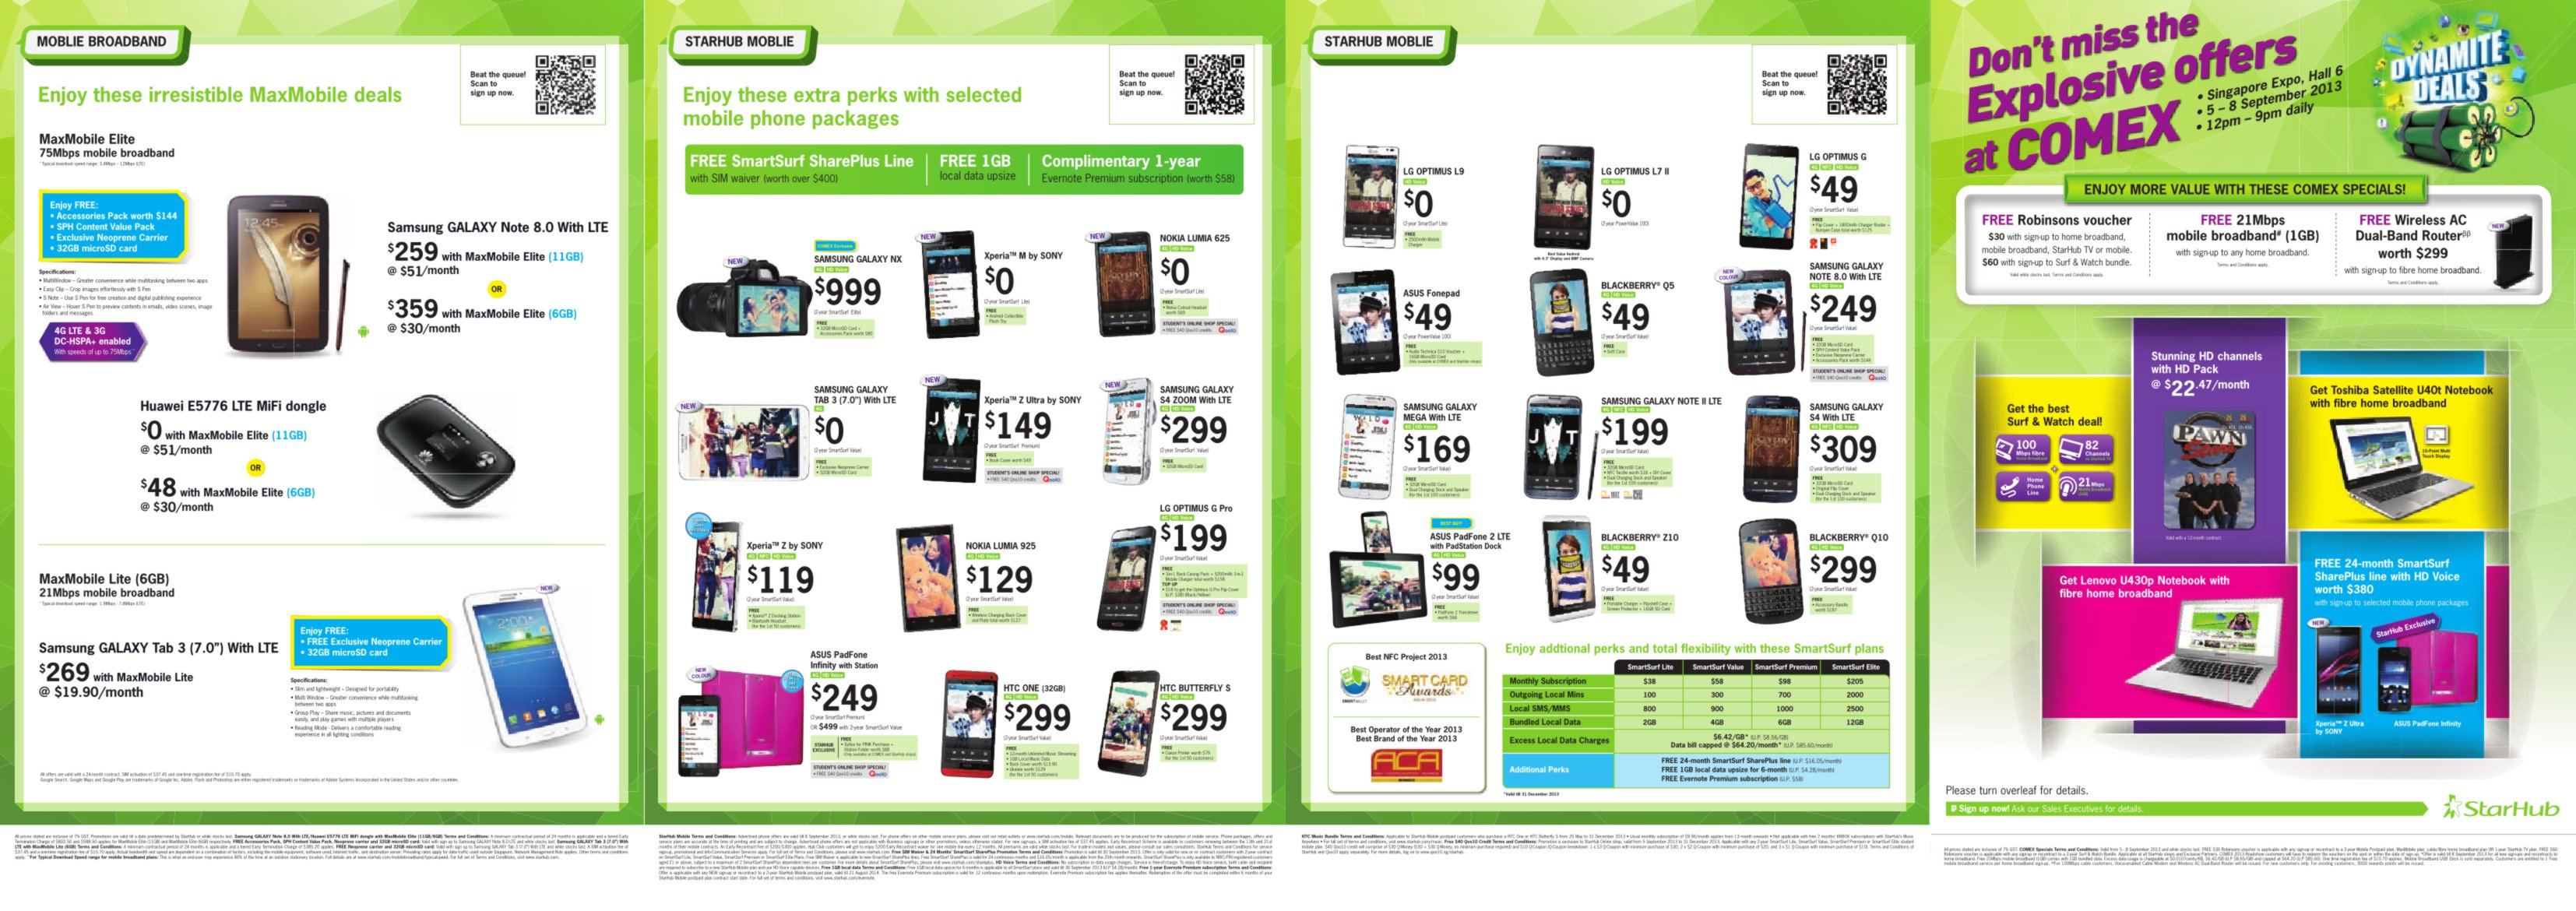 COMEX 2013 - StarHub Promotions Price List - Page1